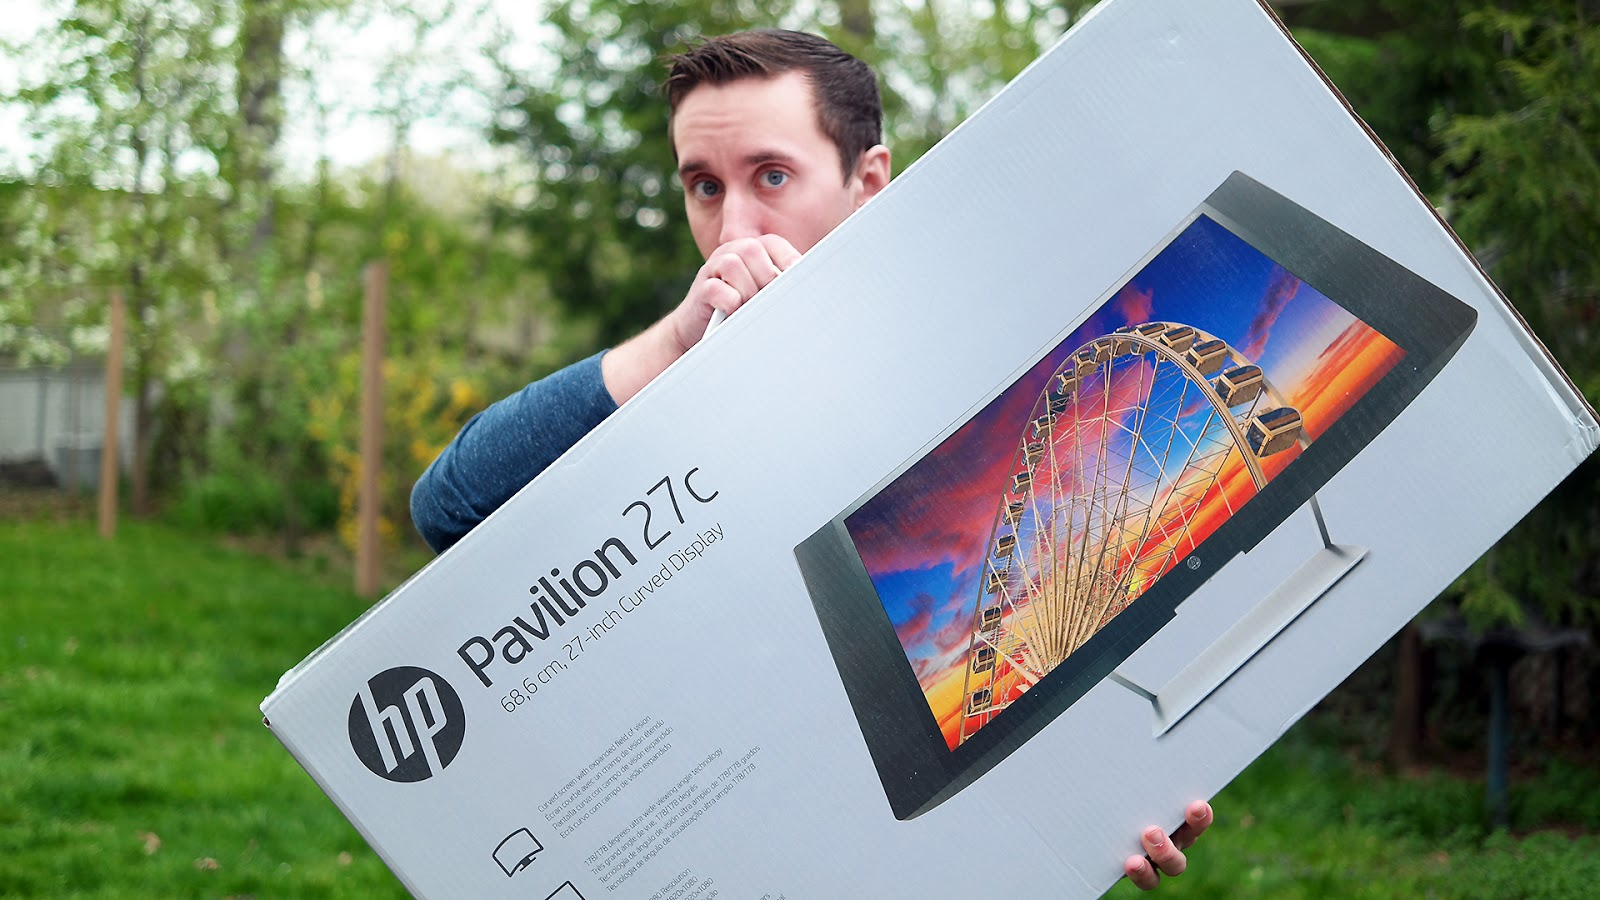 Raymond Strazdas HP 27c Curved Display Campaign